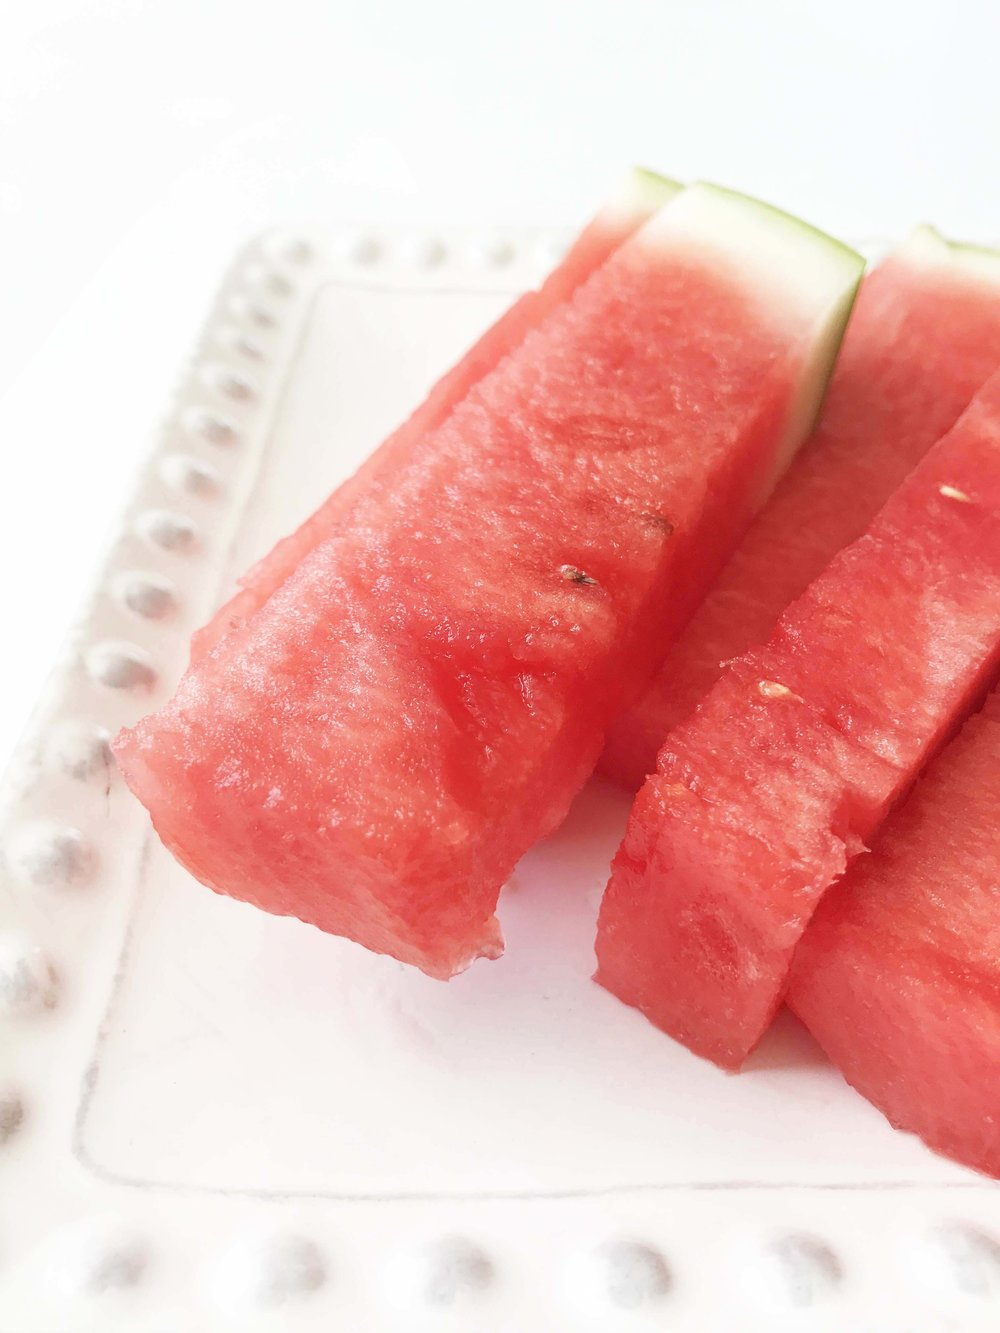 cutting-watermelon6.jpg